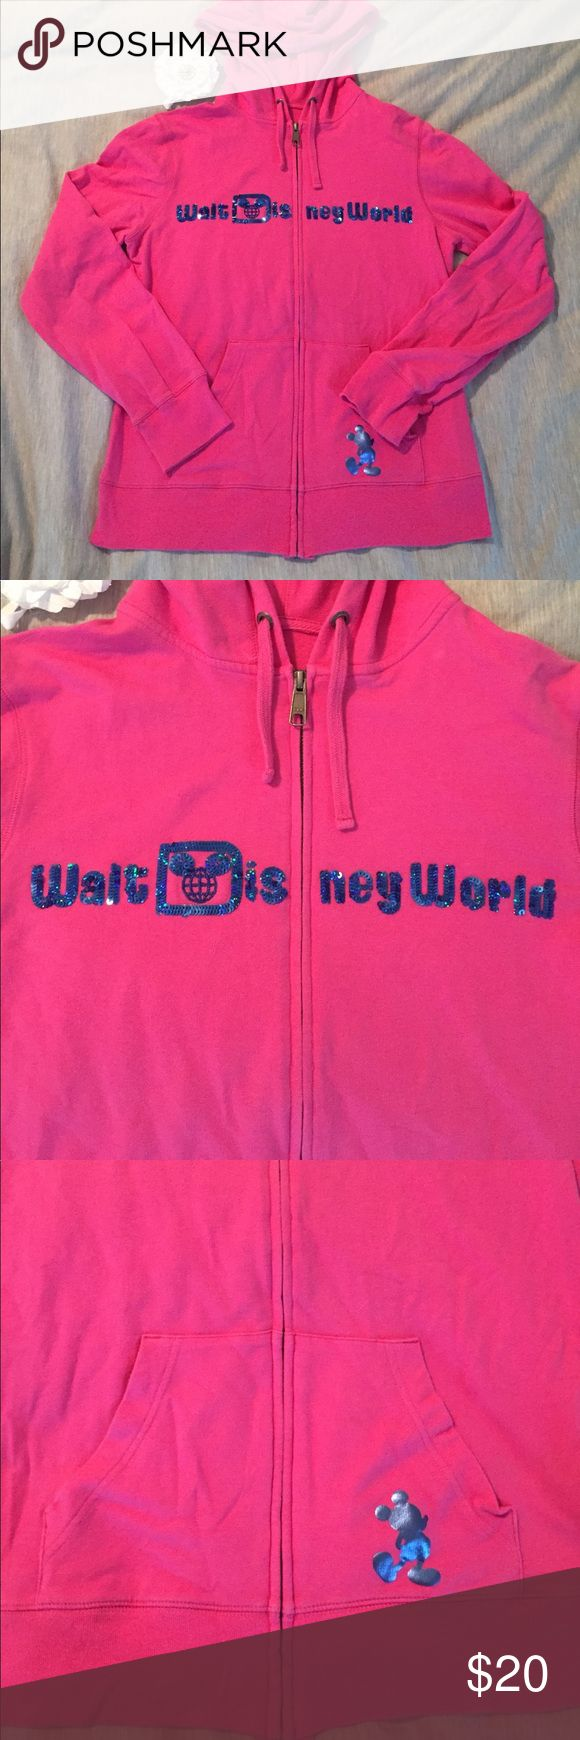 Walt Disney World Pink Zip-up Hoodie Size S Walt Disney World Pink Zip-up Hoodie Size S. Purchased in Disney World and wished I had bought a bigger size, as they don't make this hoodie anymore 😞. It is in perfect condition! Hoping it can find a good home! Disney Tops Sweatshirts & Hoodies